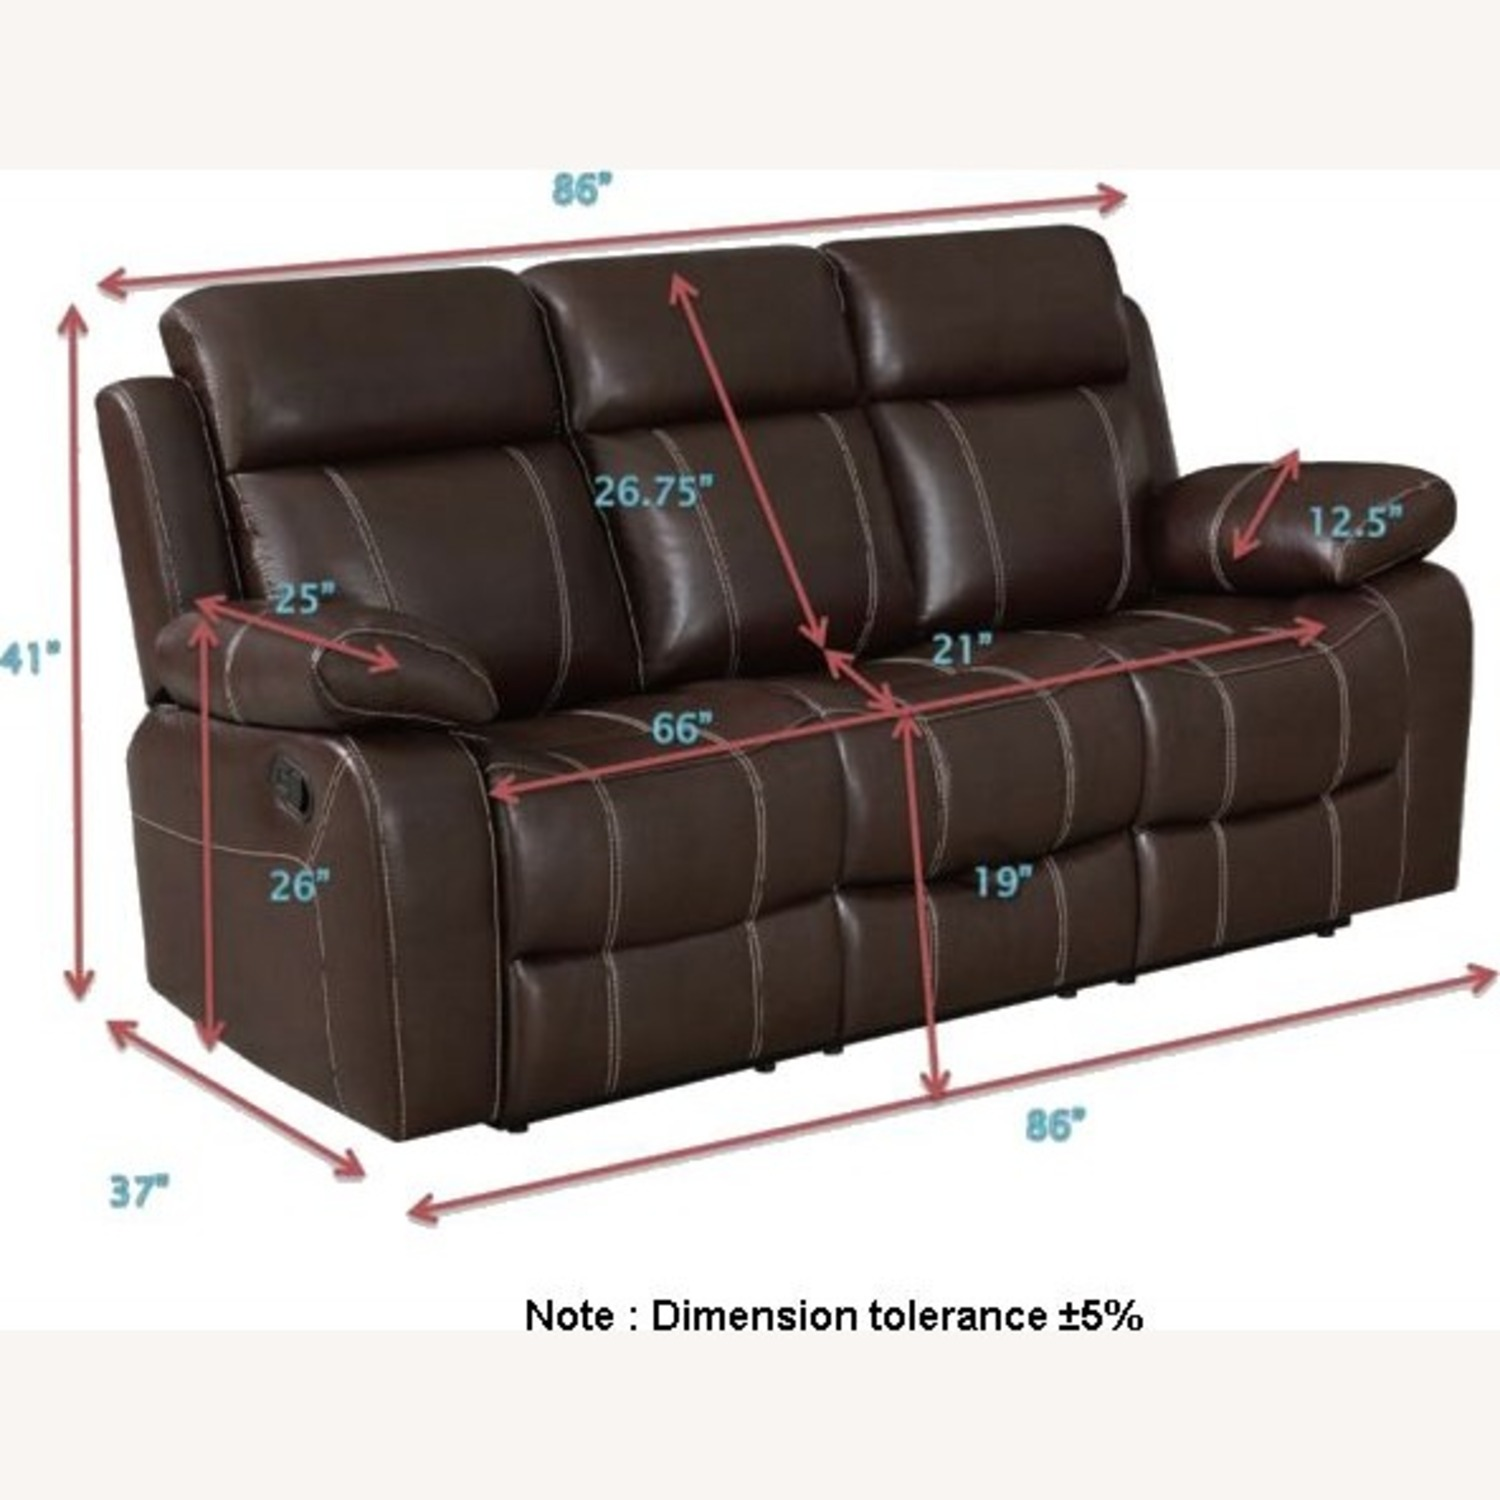 Motion Sofa In Chestnut Leather W/ Storage Drawer - image-9